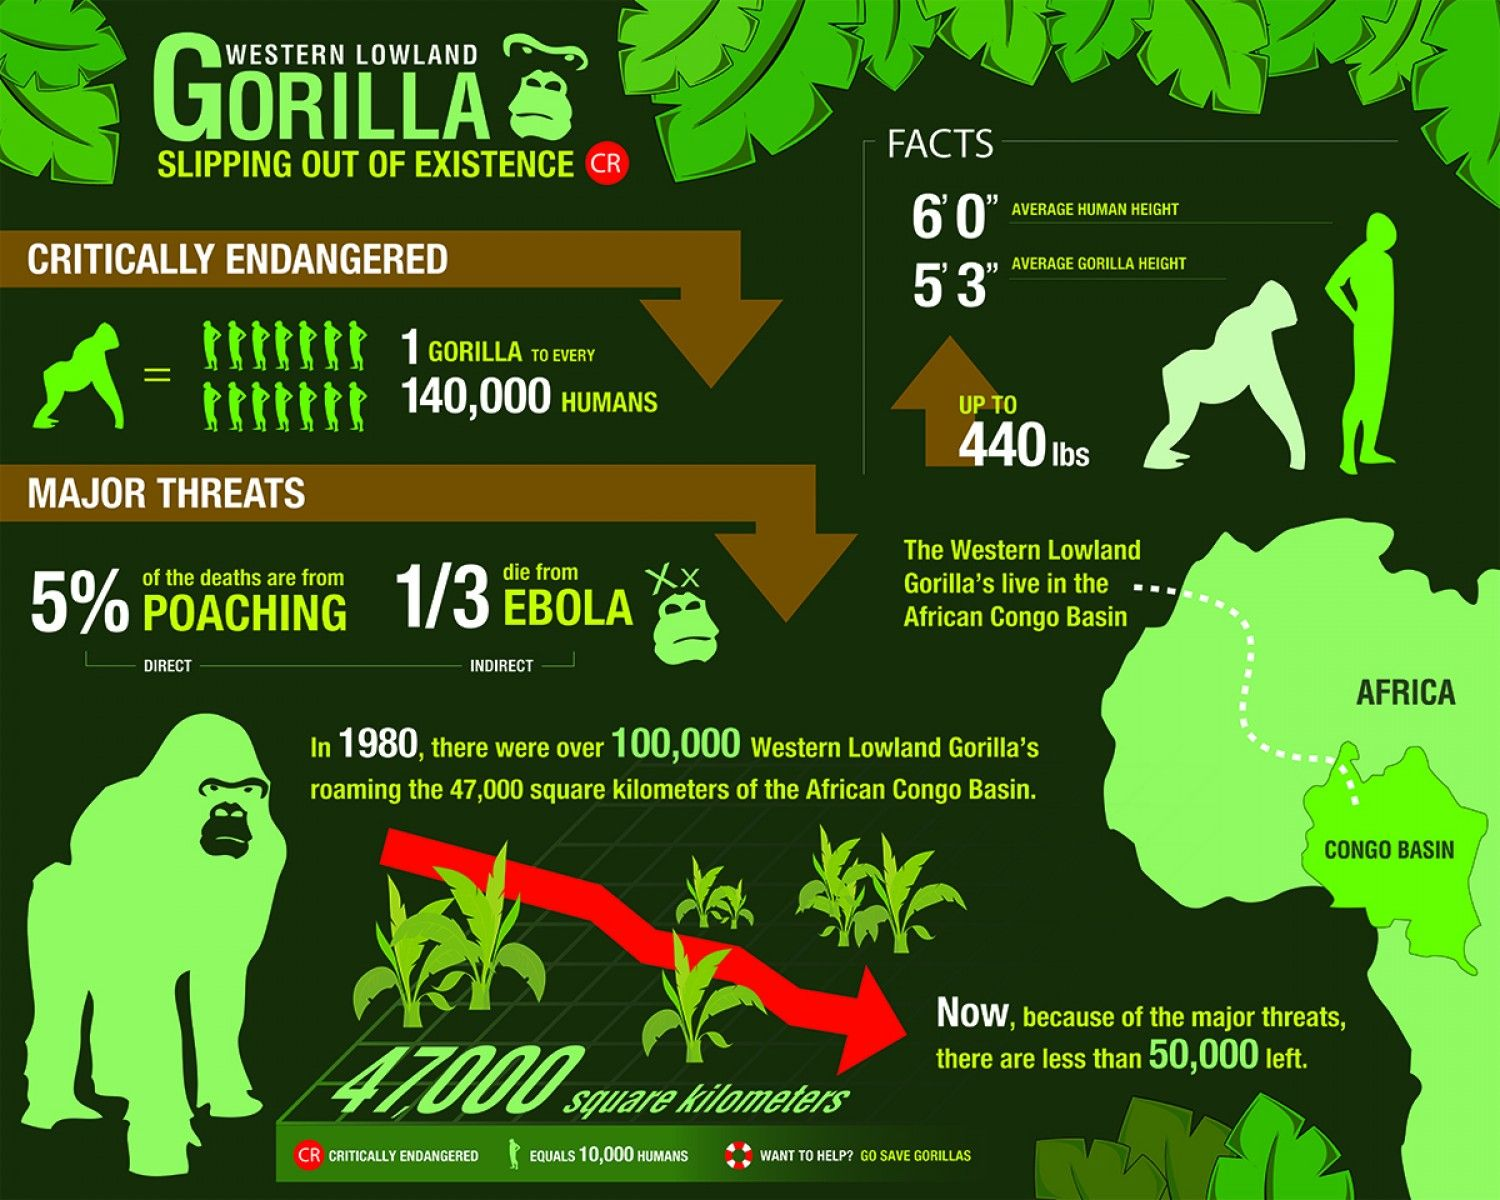 Western Lowland Gorillas Slipping Out of Existence